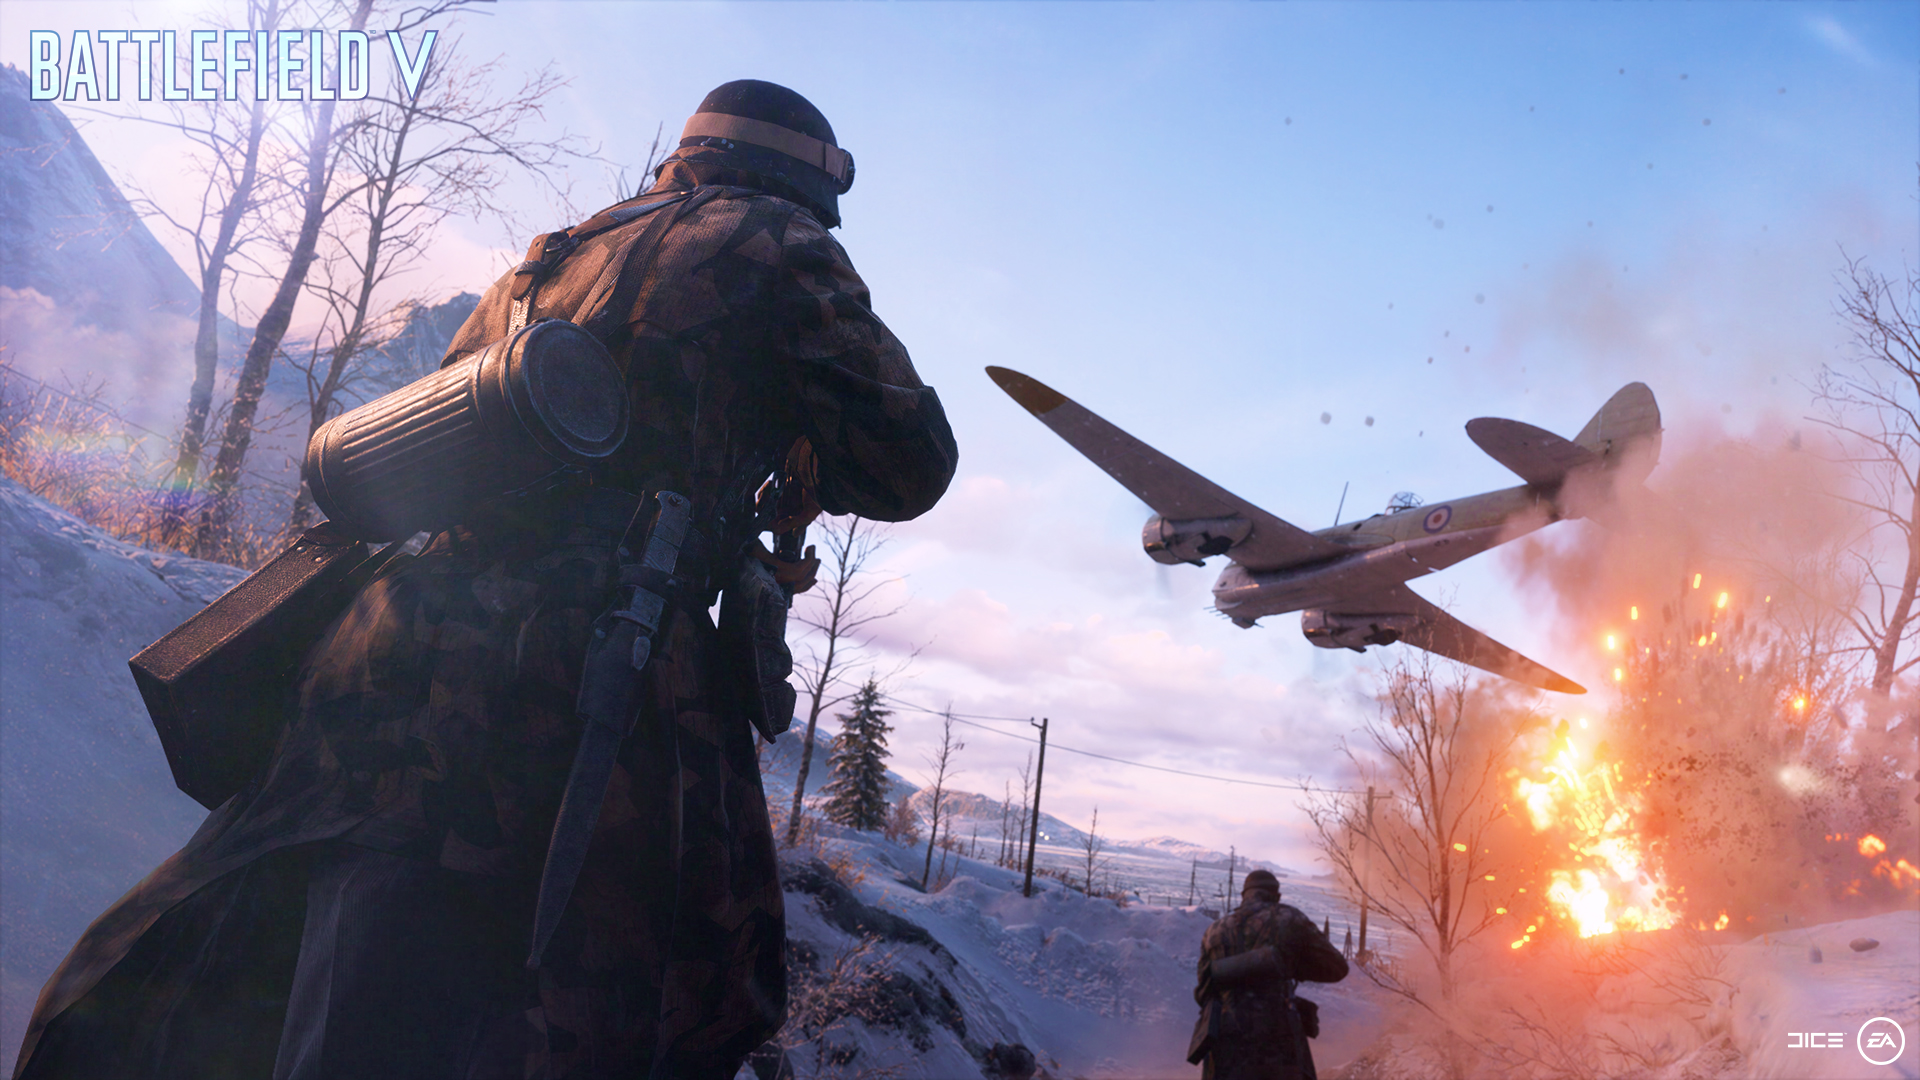 Battlefield V Getting Positive Changes To Make It Even Better